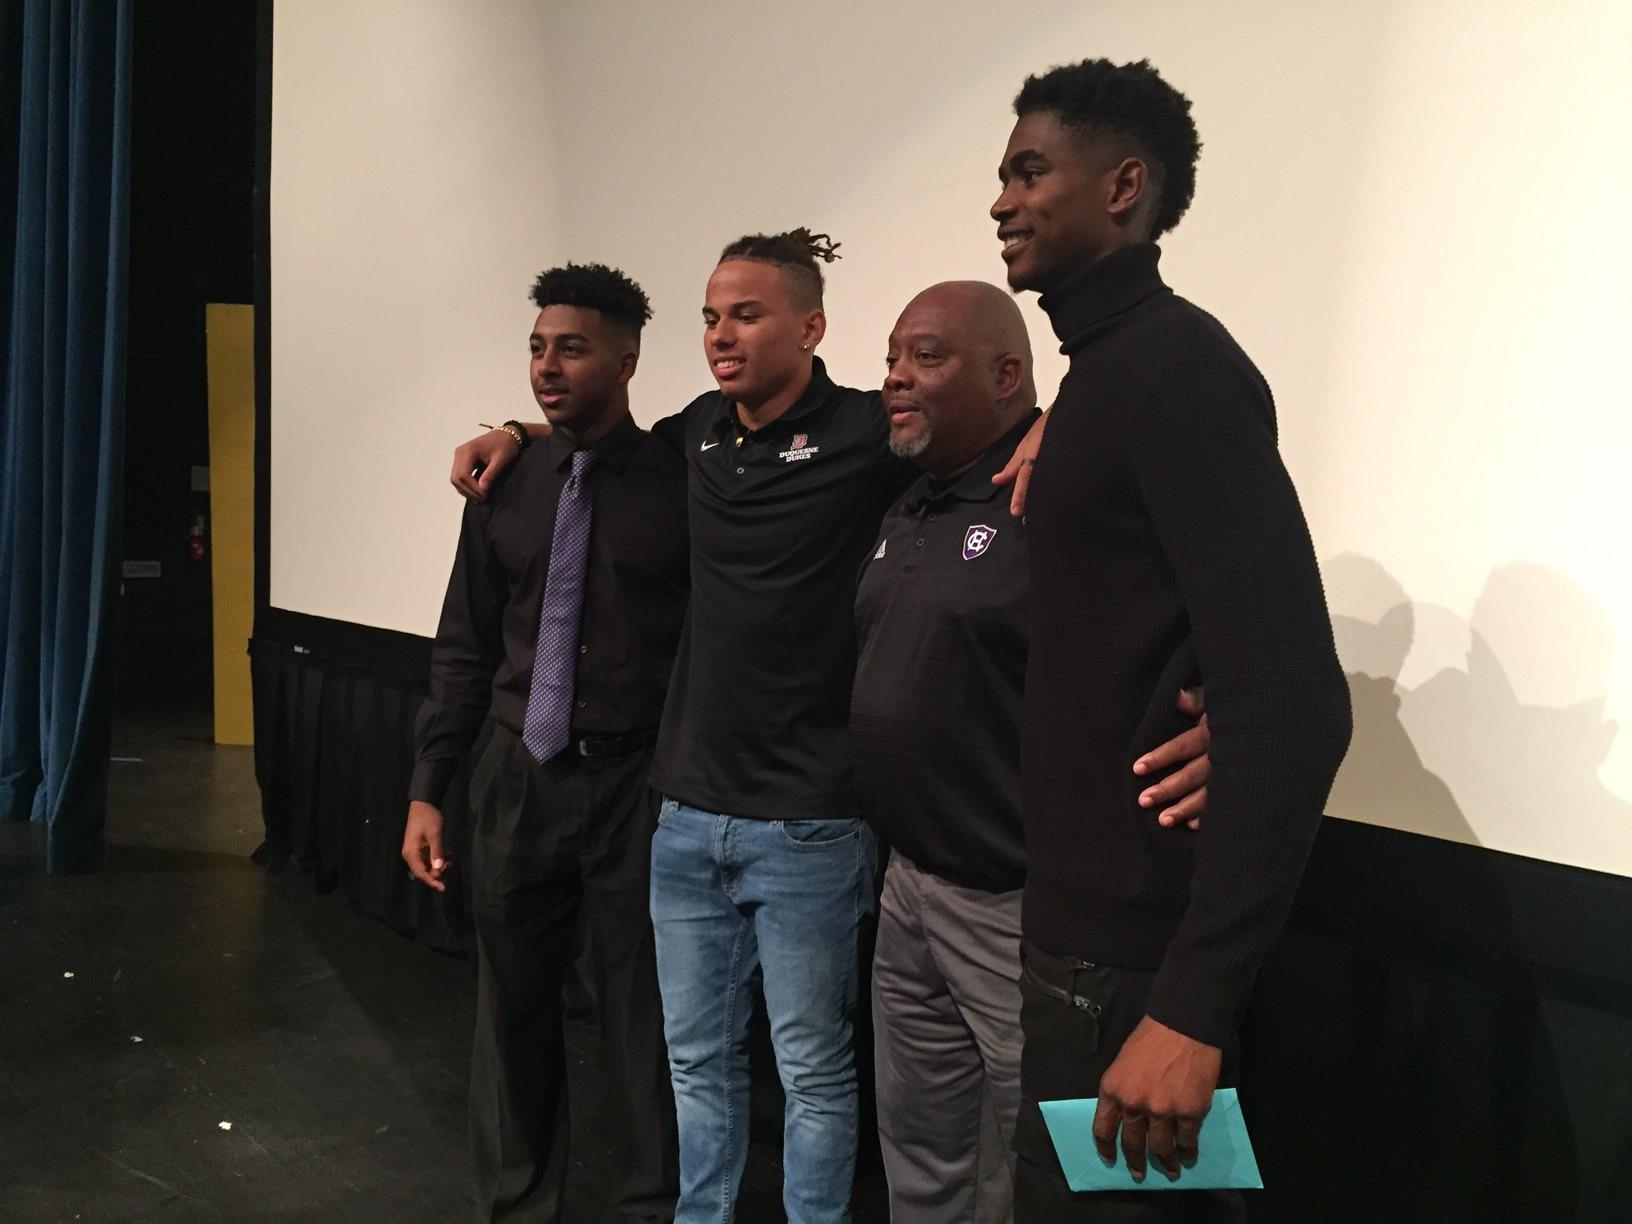 Football players John Smith, Jake Collins and Atorian Perry pause for pictures with Park Vista's Coach Smith.